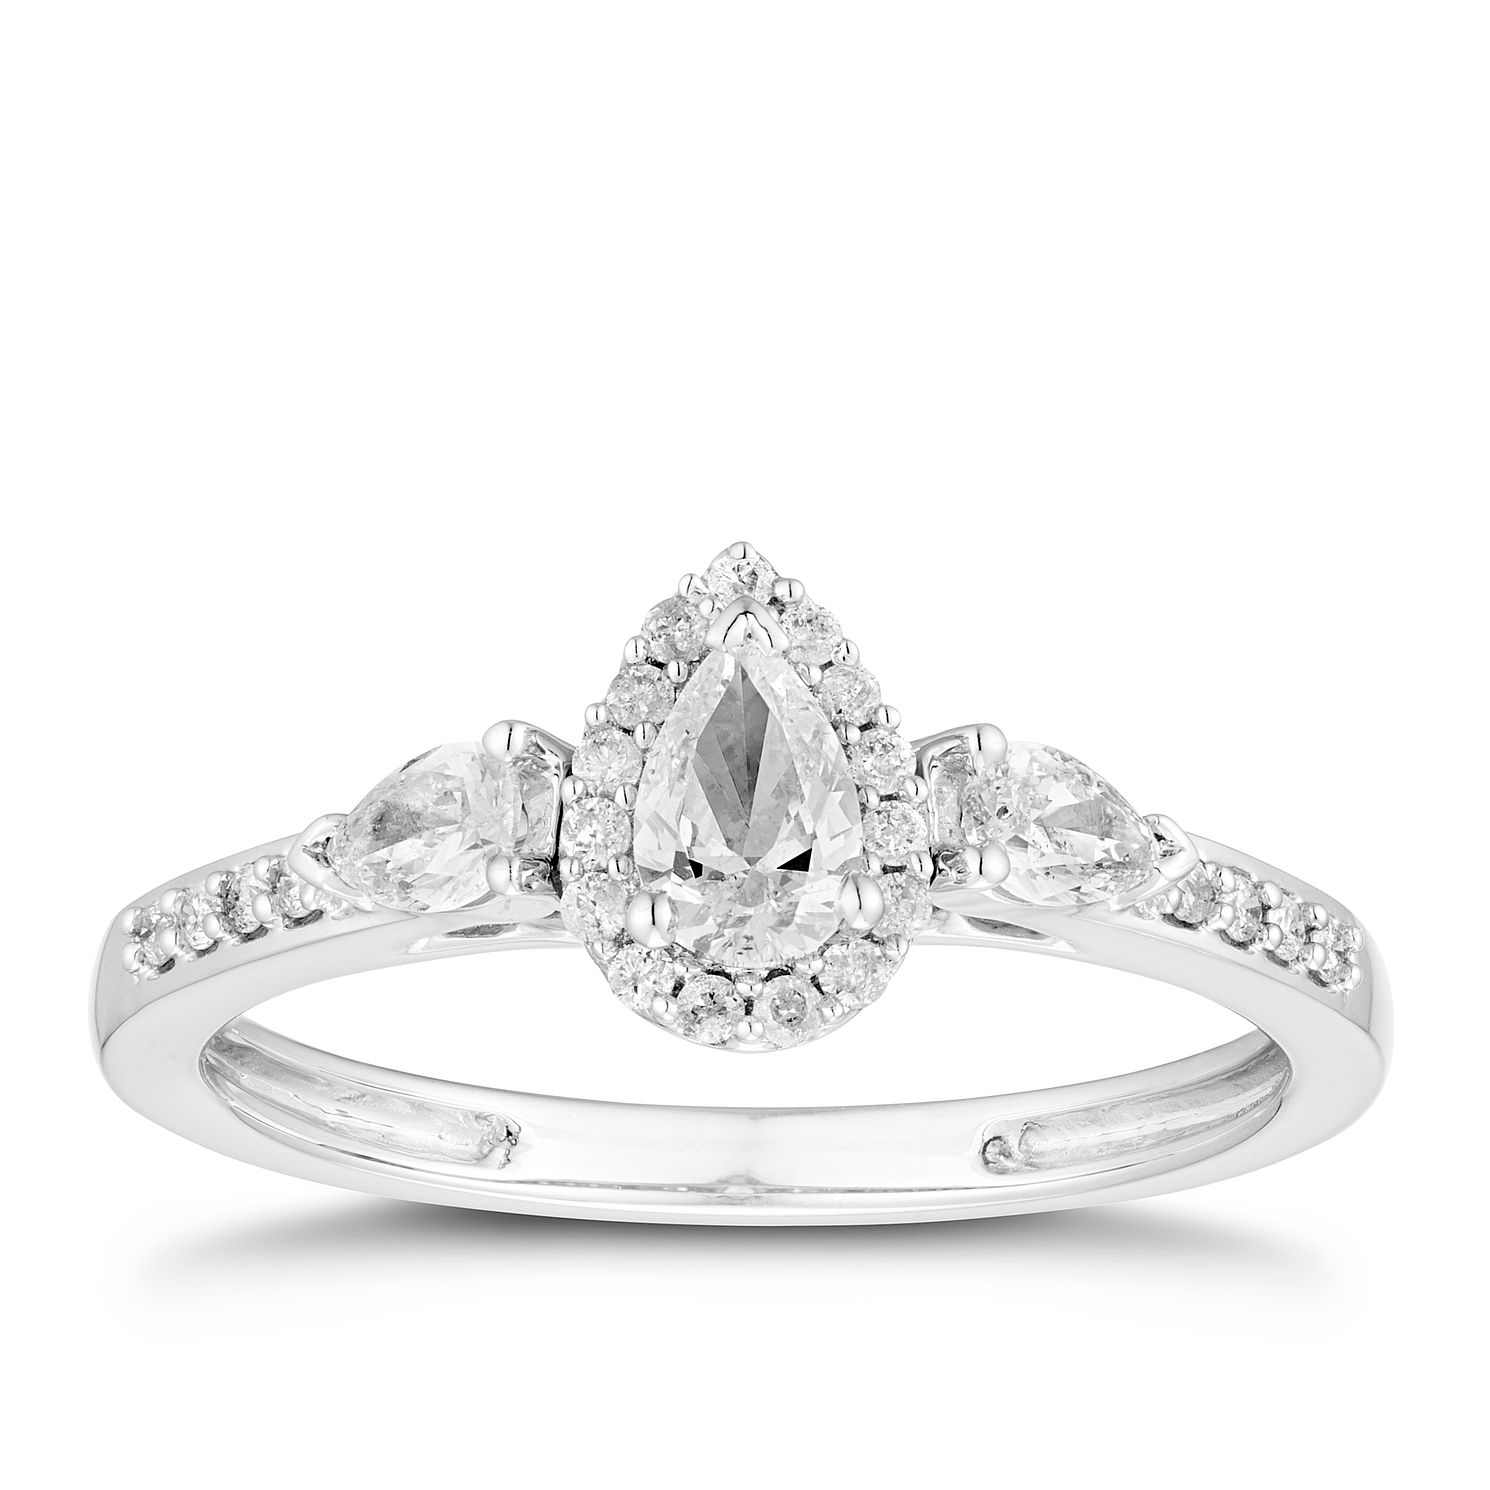 18ct White Gold 1/2ct Diamond Pear Halo Ring - Product number 5933153